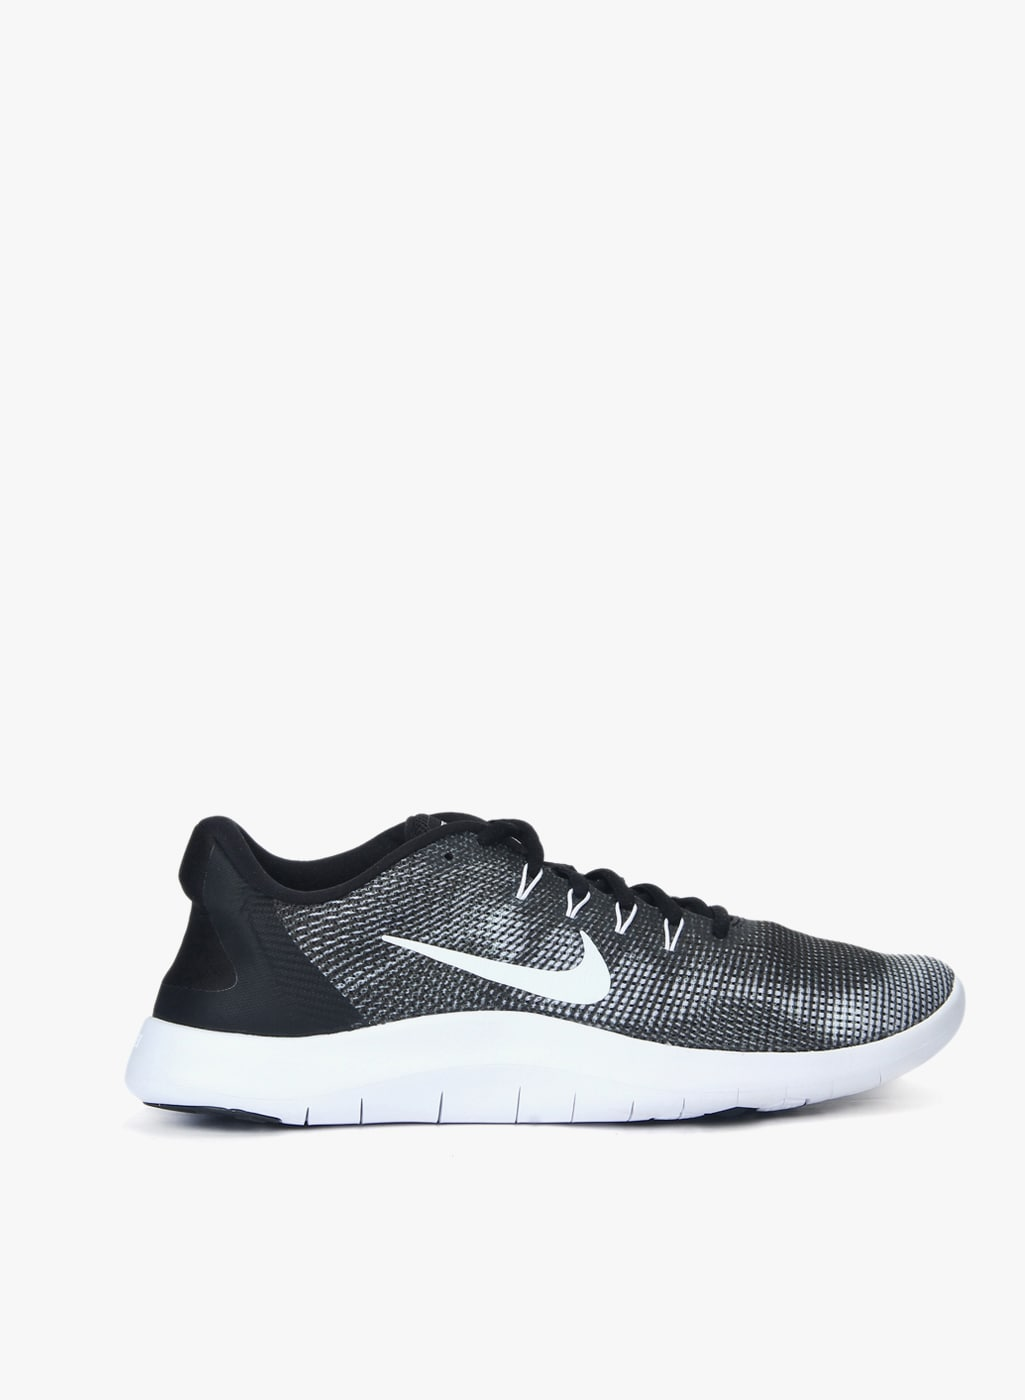 60% OFF on Nike shoes AIRMAX 2017 Running Shoes For Men